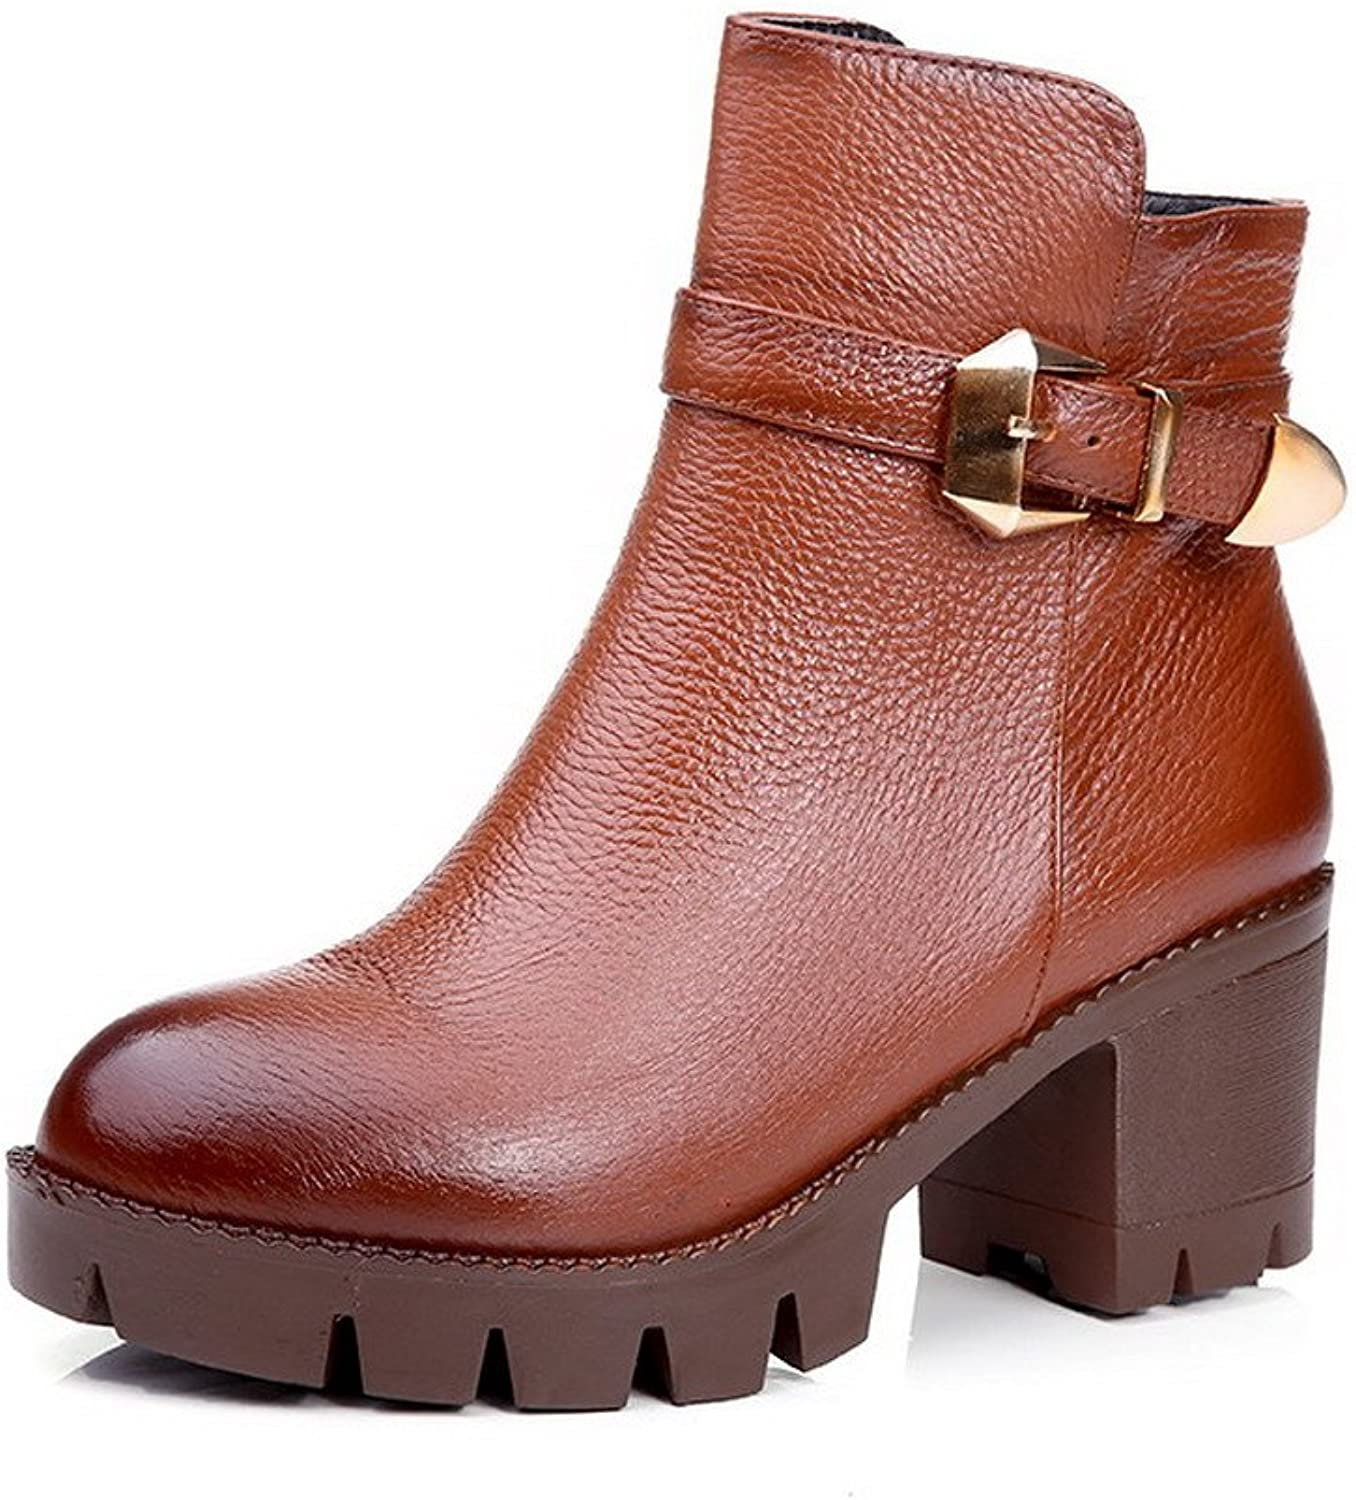 Weenfashion Women's Solid Closed Round Toe Blend Materials Cow Leather Low-top Boots